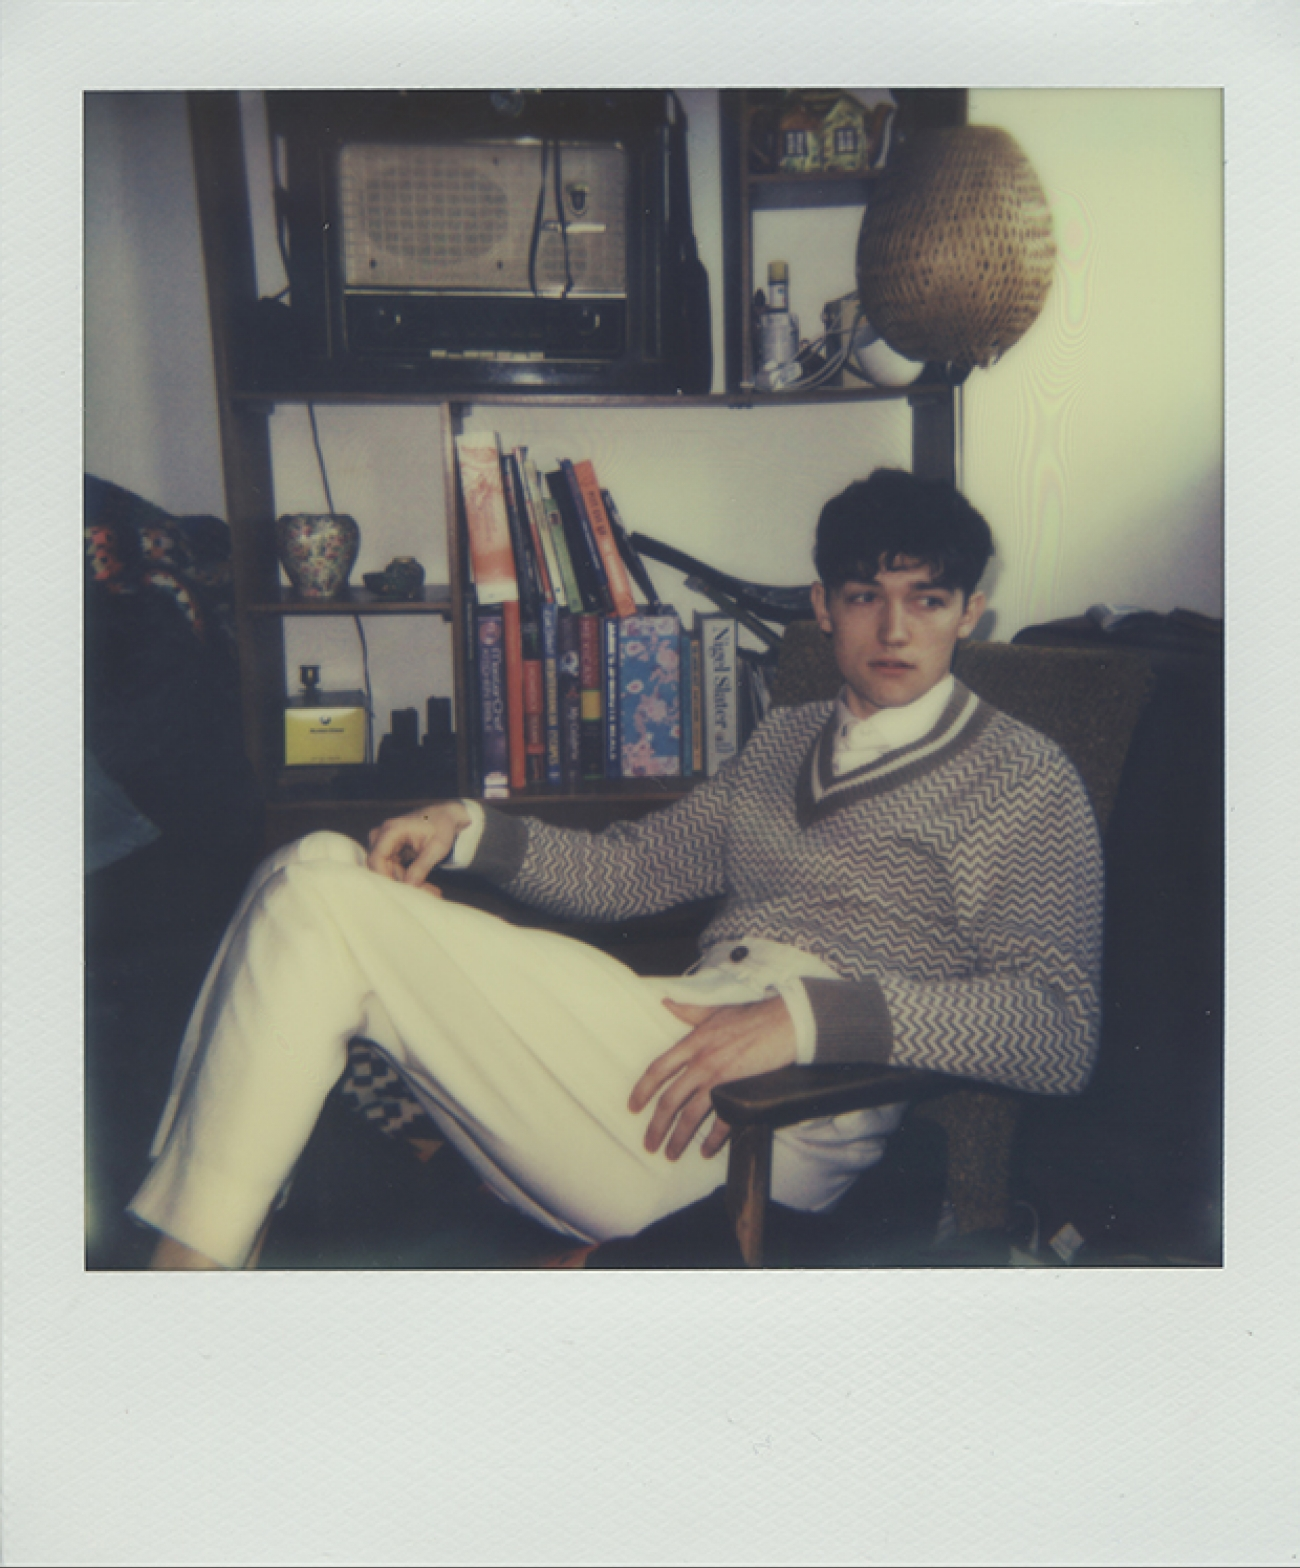 Joey_polaroid_1500_2s